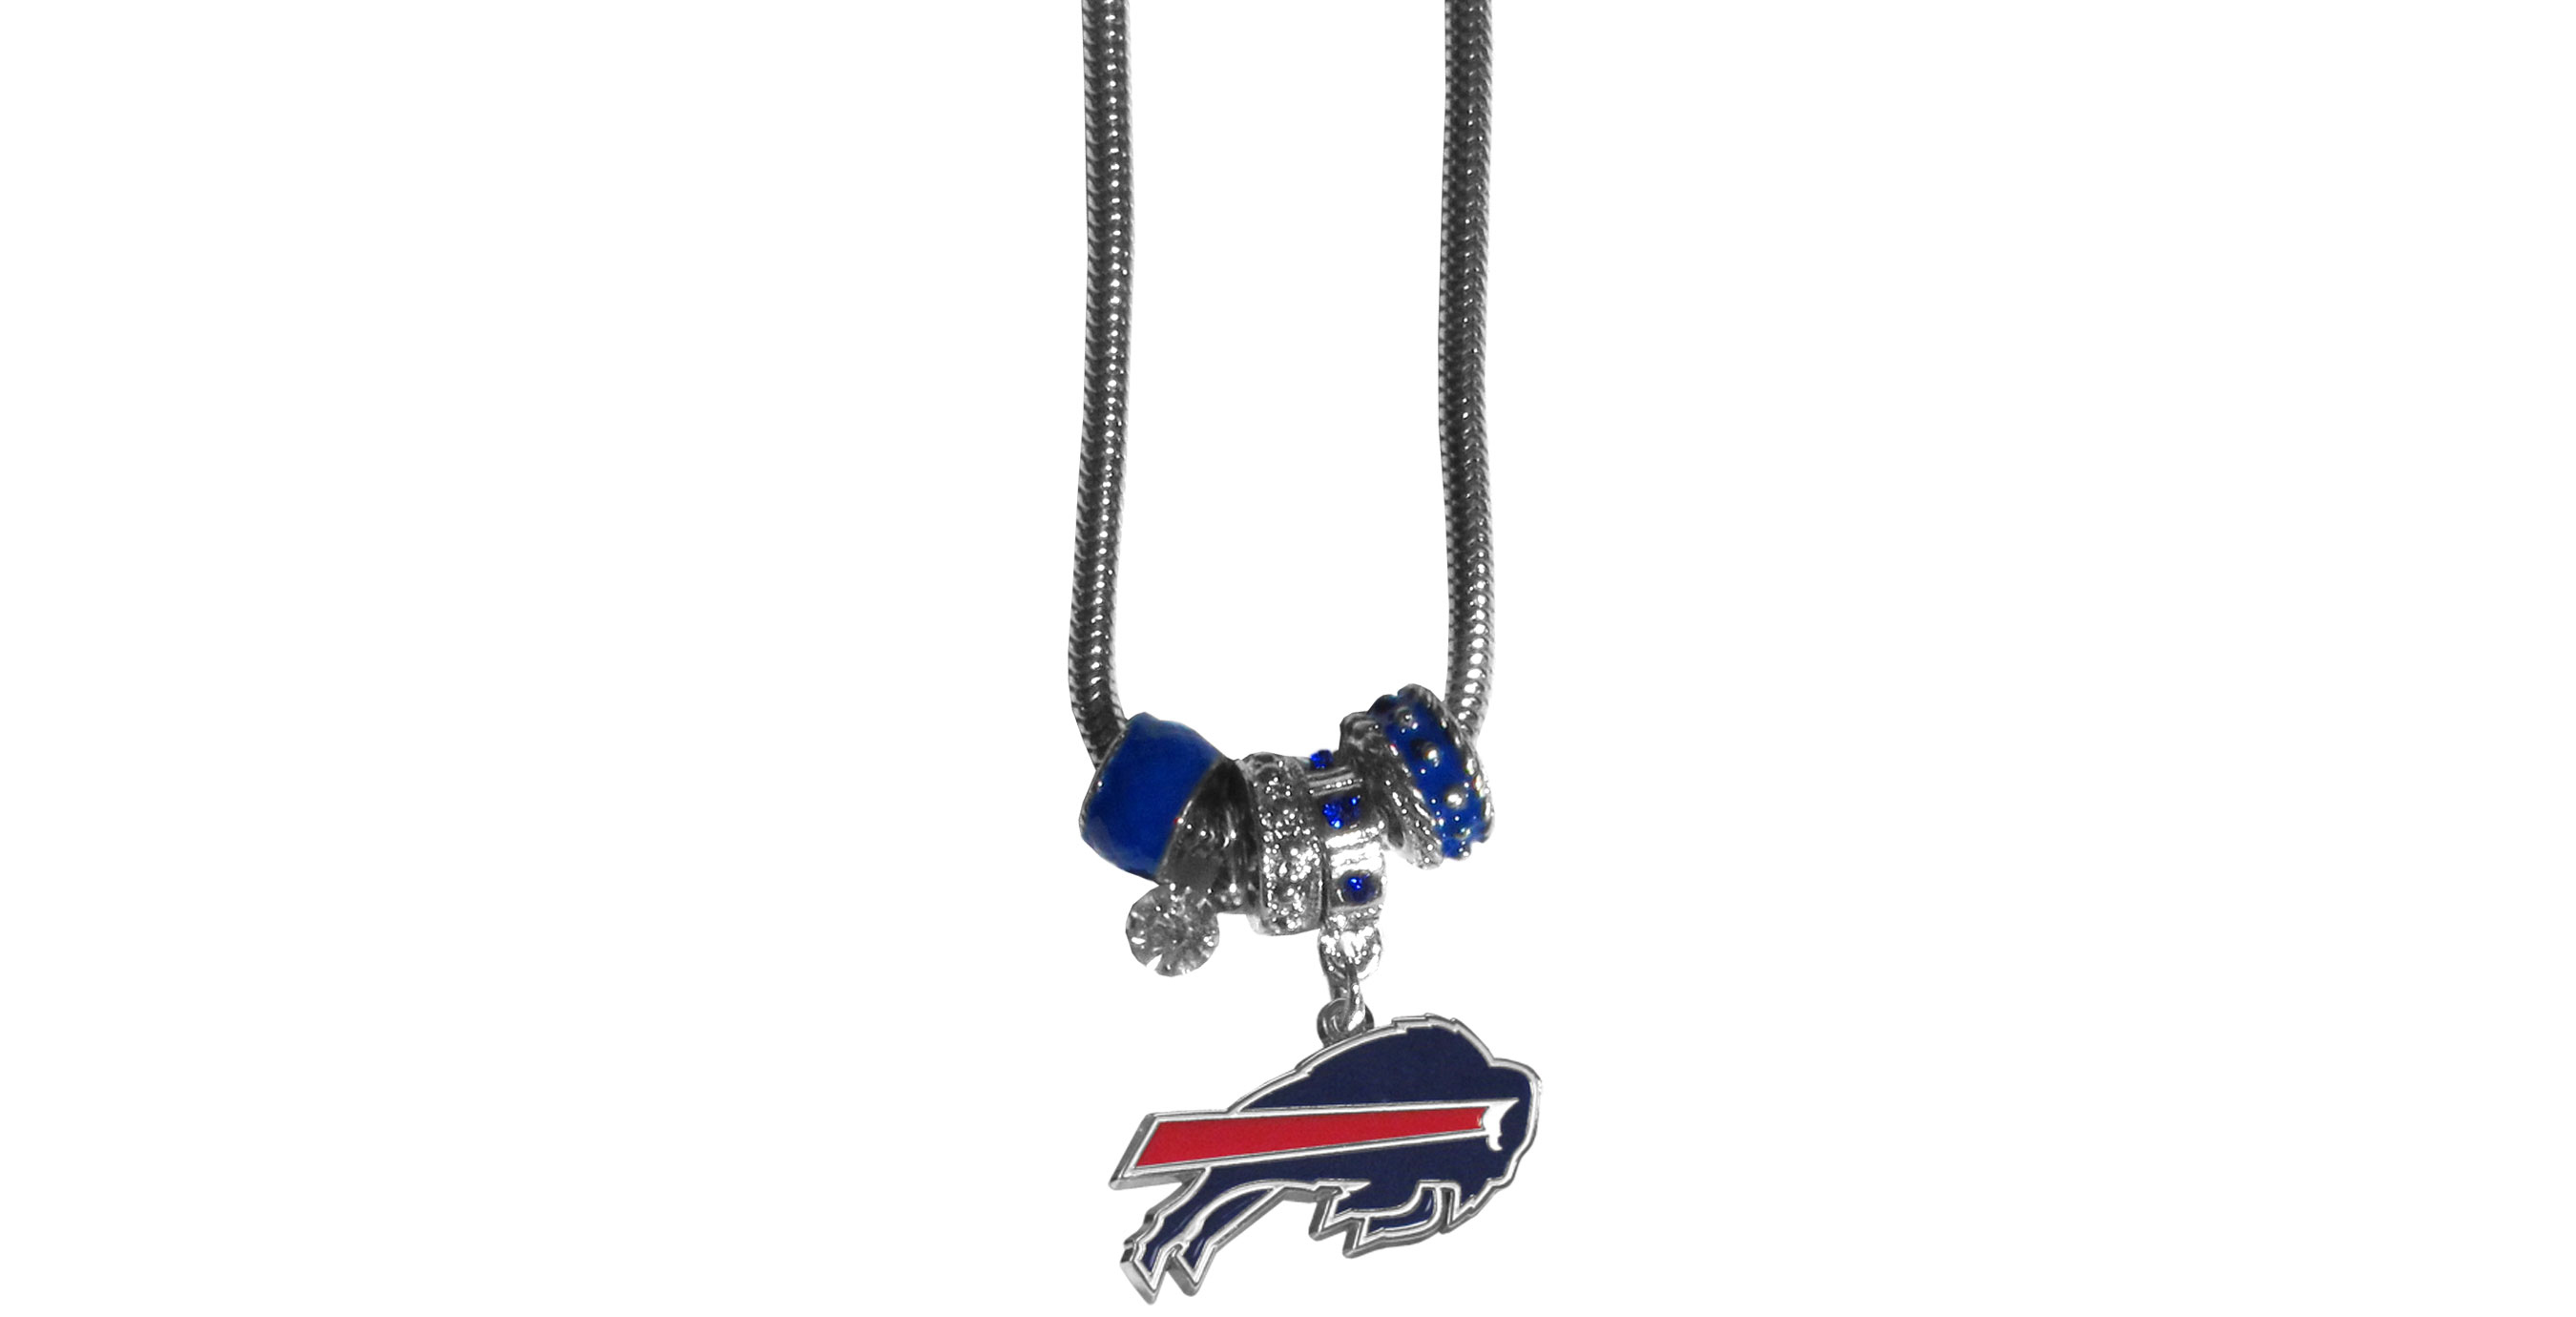 Buffalo Bills Euro Bead Necklace - We have combined the wildly popular Euro style beads with your favorite team to create our Buffalo Bills bead necklace. The 18 inch snake chain features 4 Euro beads with enameled team colors and rhinestone accents with a high polish, nickel free charm and rhinestone charm. Perfect way to show off your team pride.